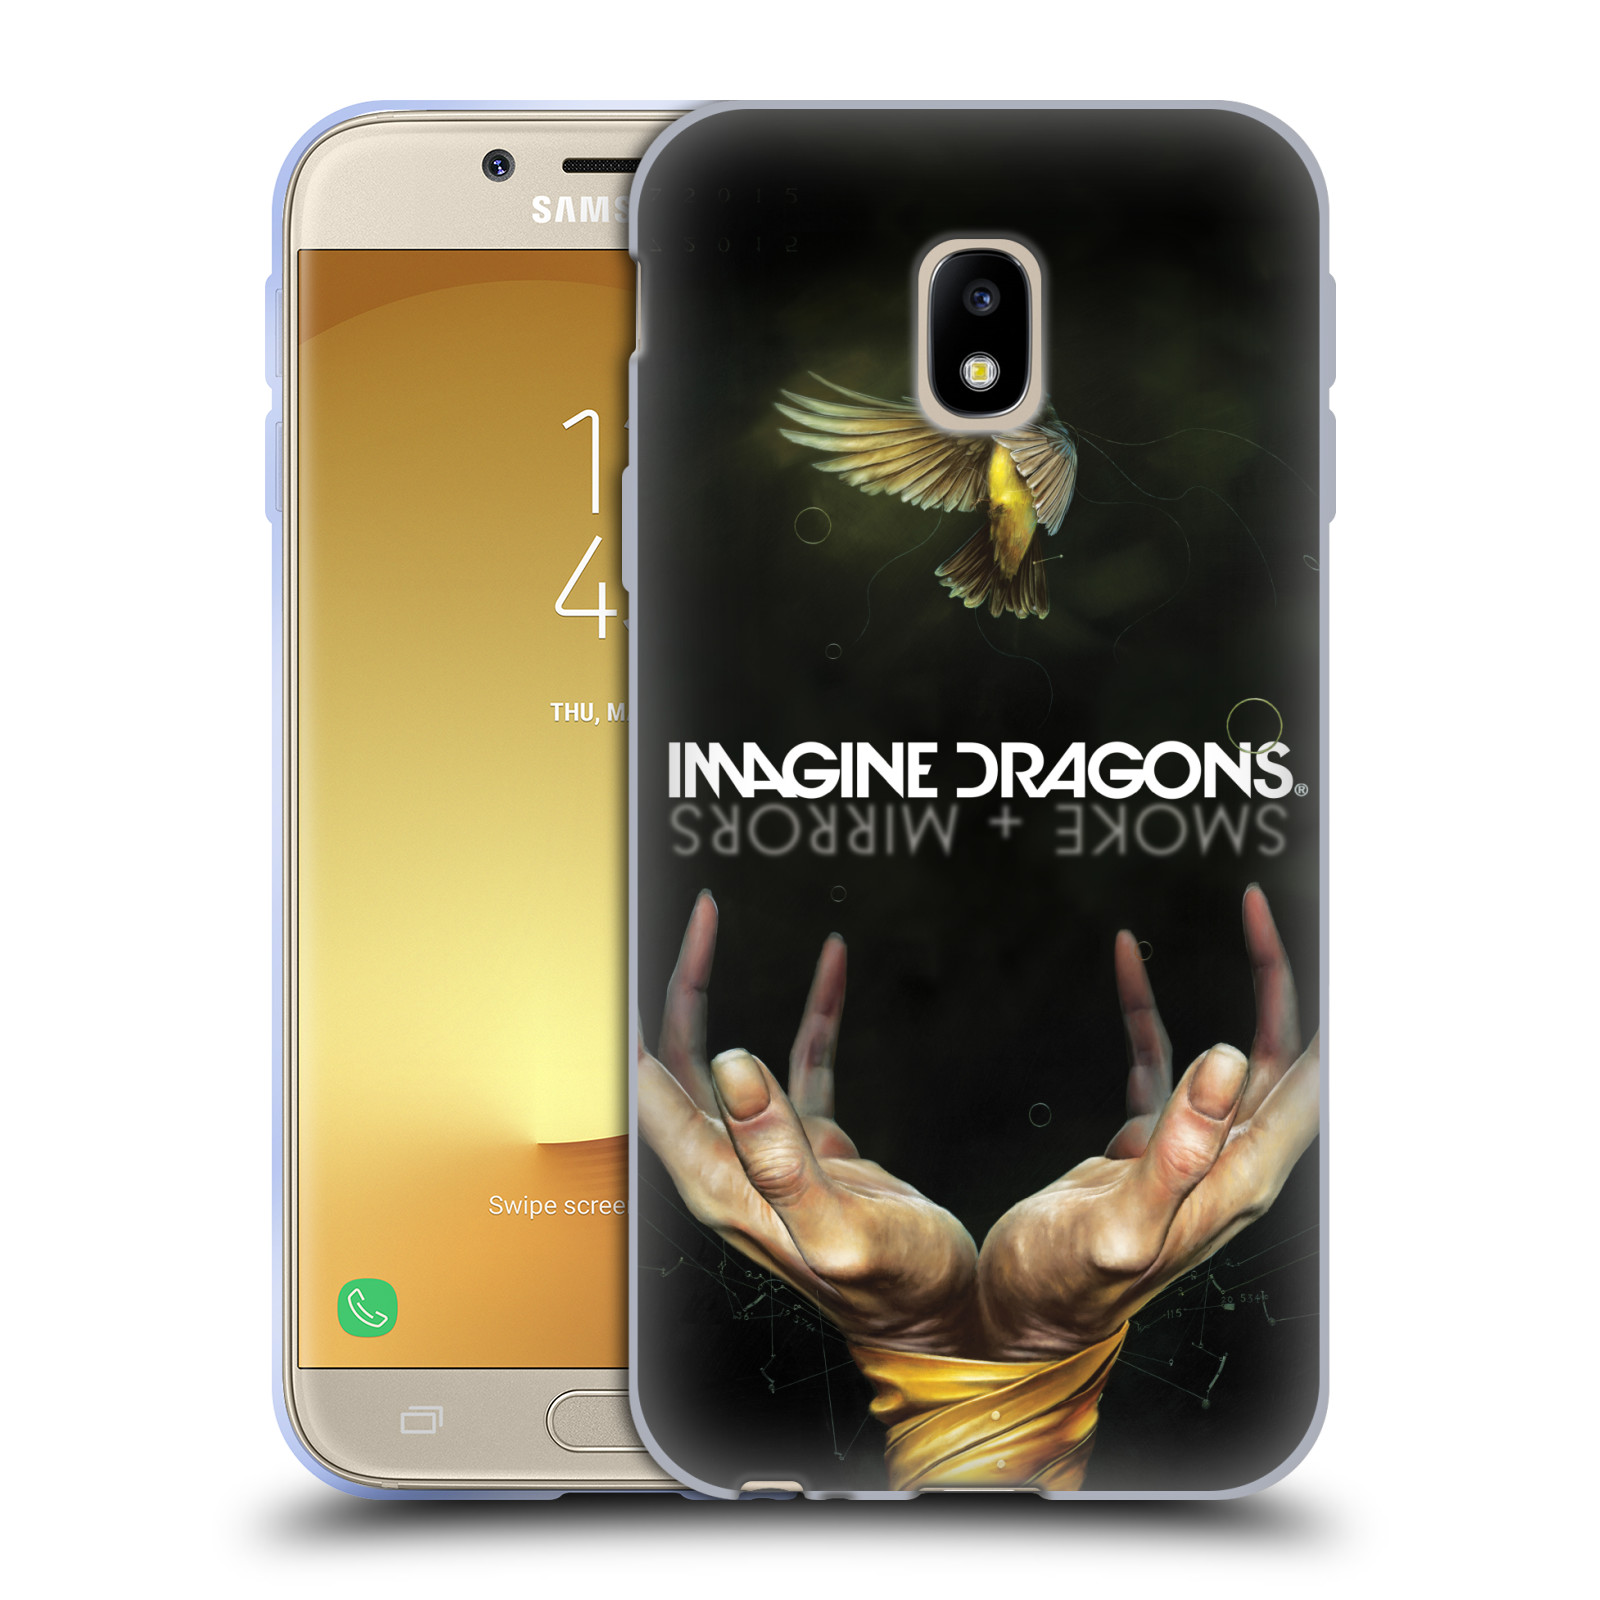 HEAD CASE silikonový obal na mobil Samsung Galaxy J3 2017 (J330, J330F) hudební skupina Imagine Dragons SMOKE and MIRRORS